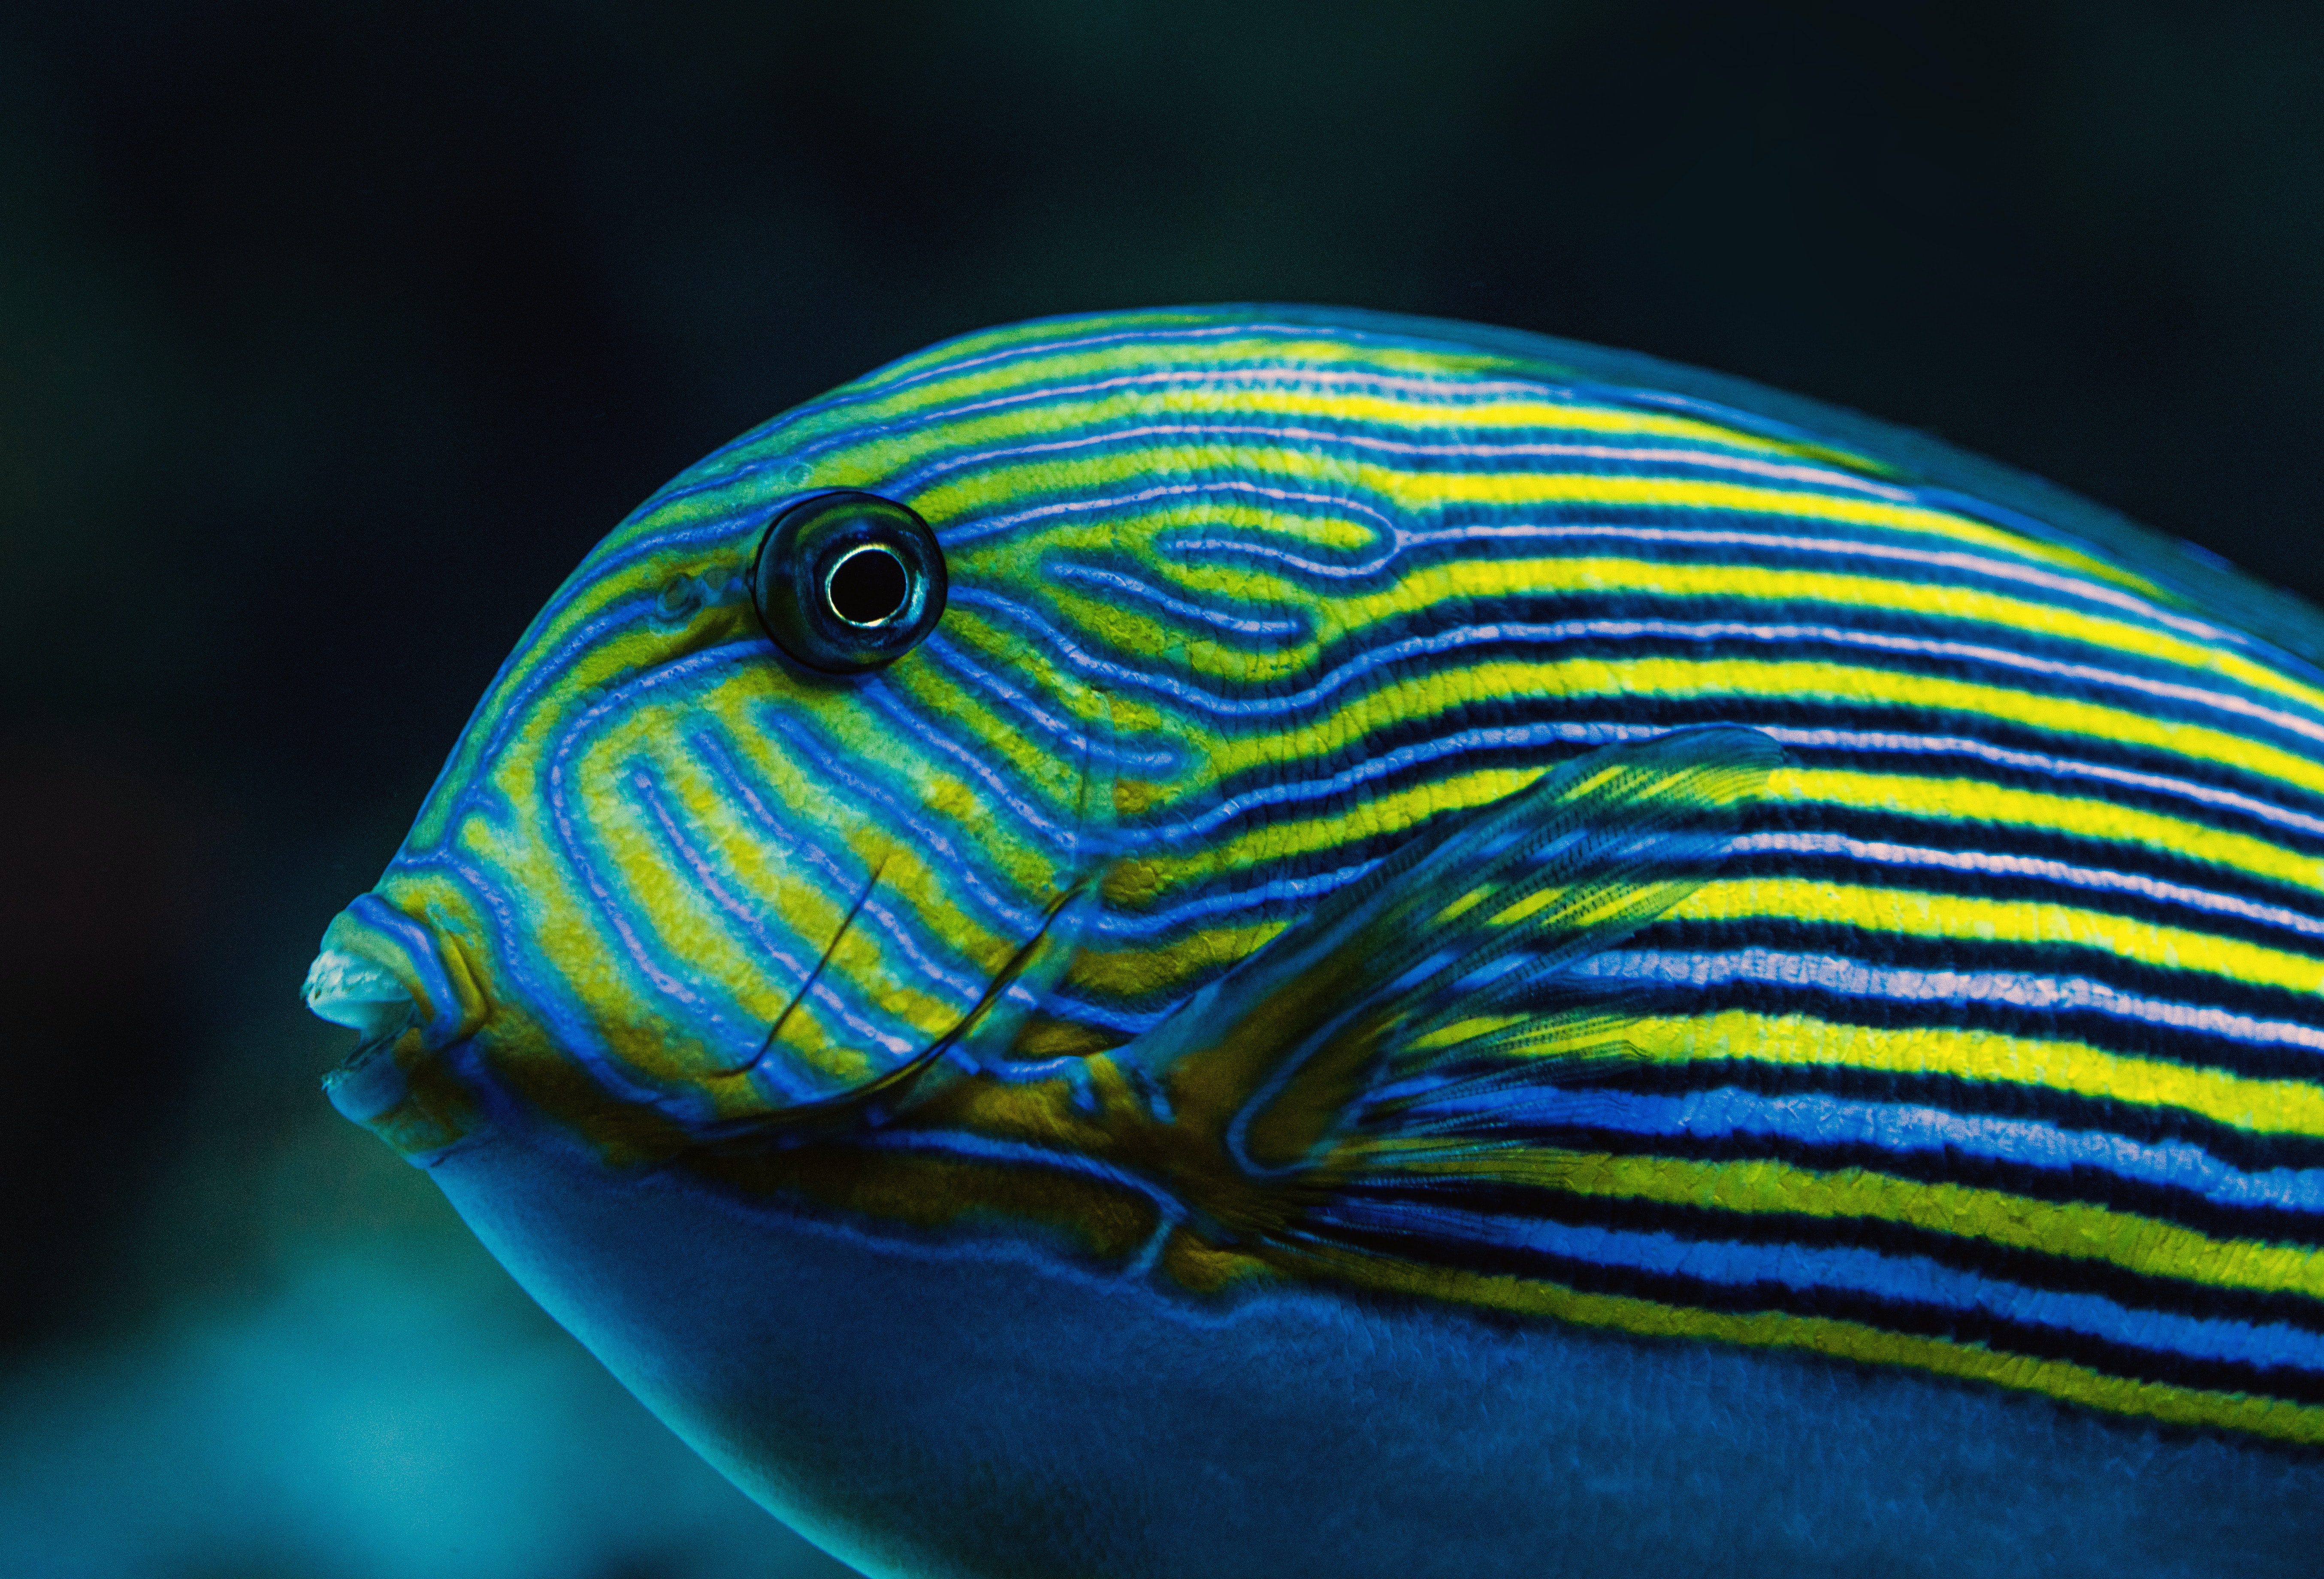 close-up photography blue and yellow striped fish